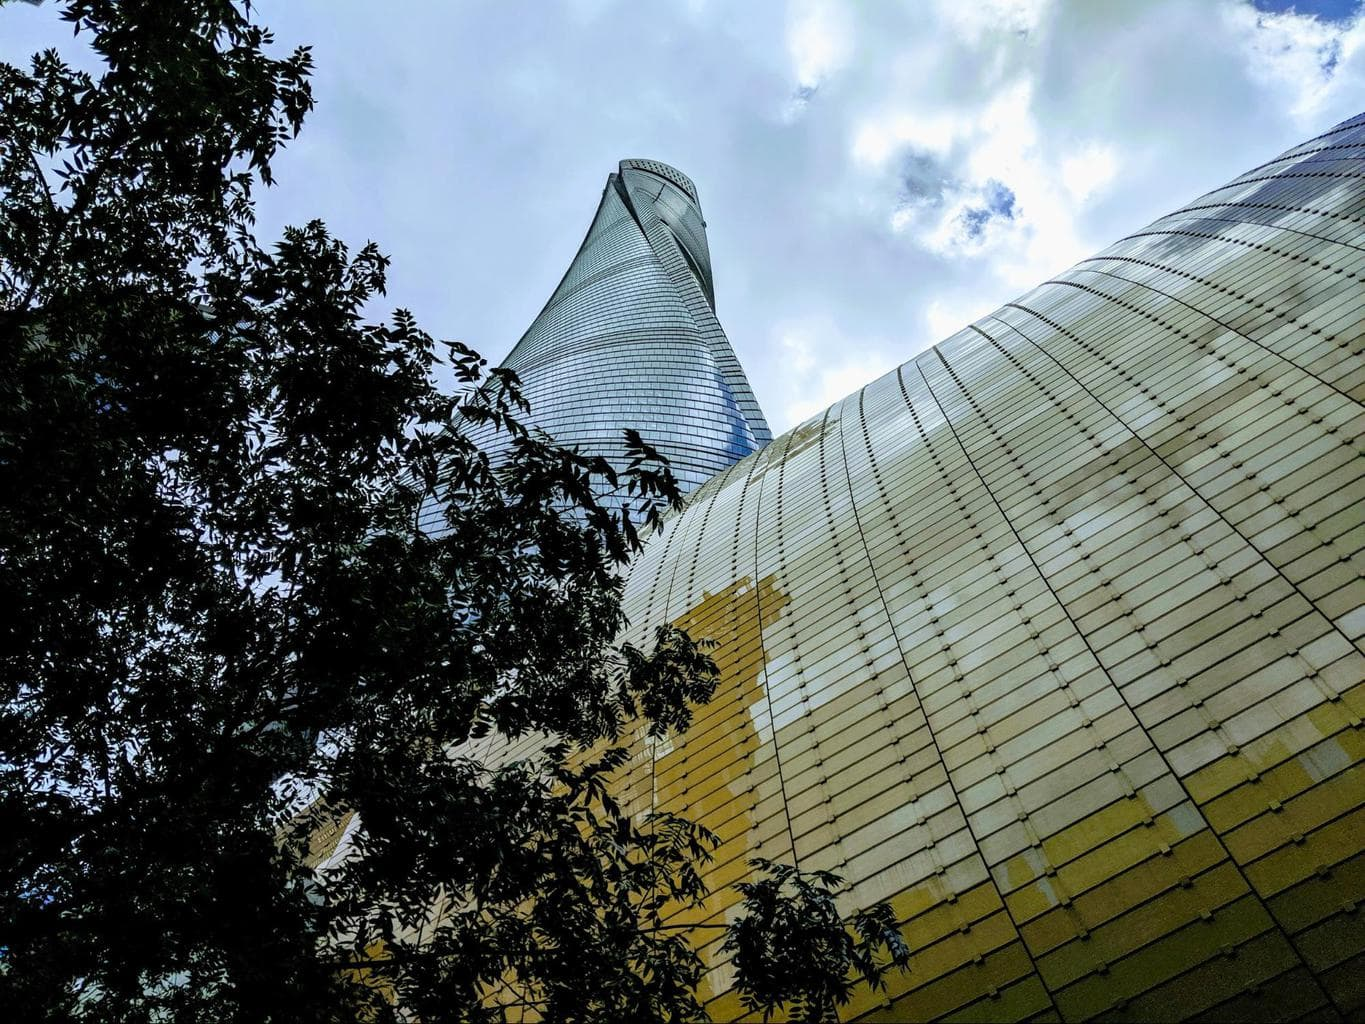 The Shanghai Tower from the ground